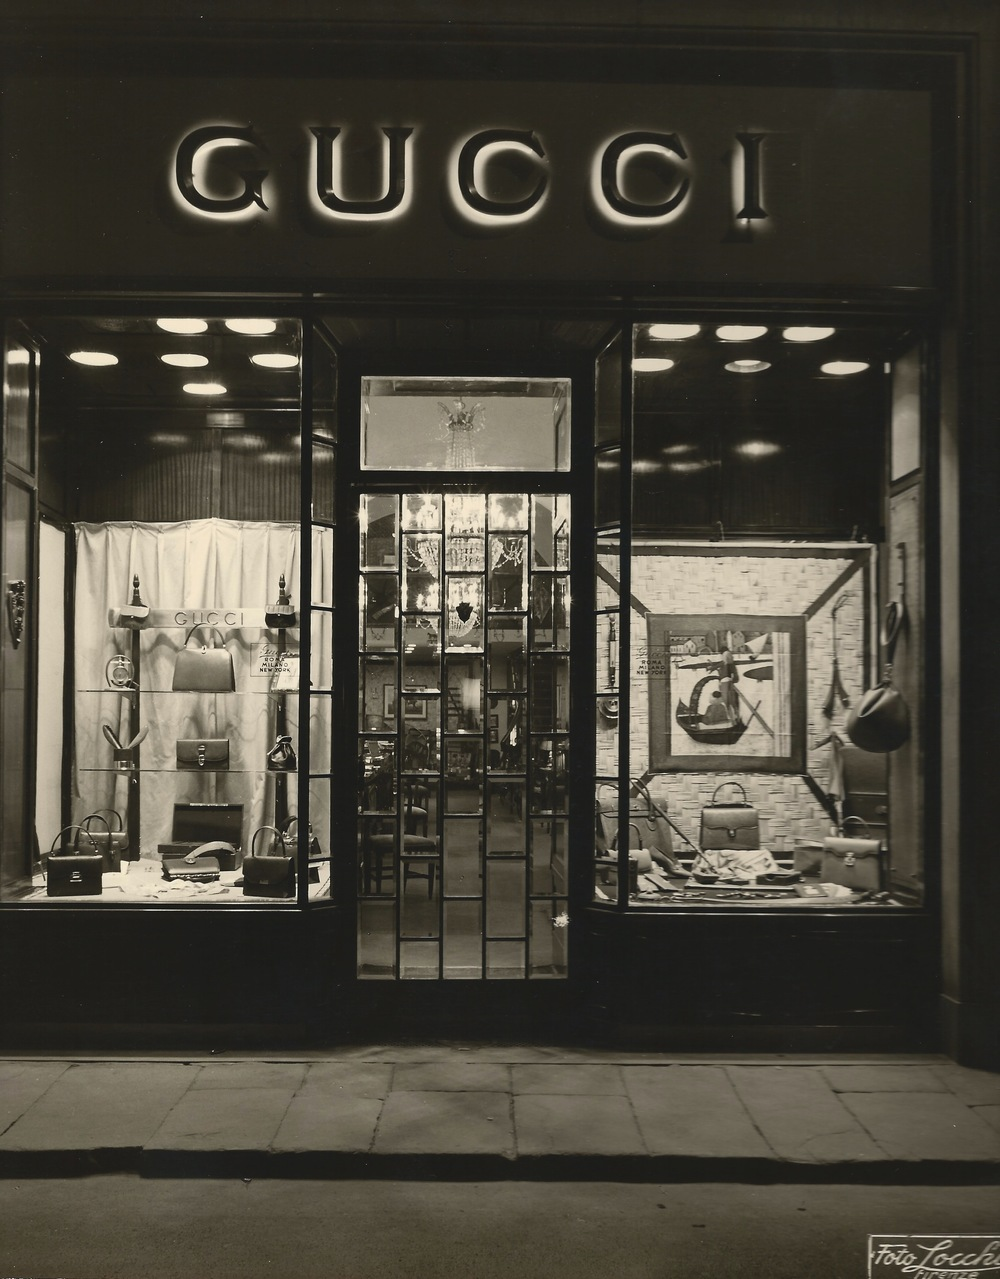 The Gucci shop in Florence c. 1950 (Patricia Gucci)